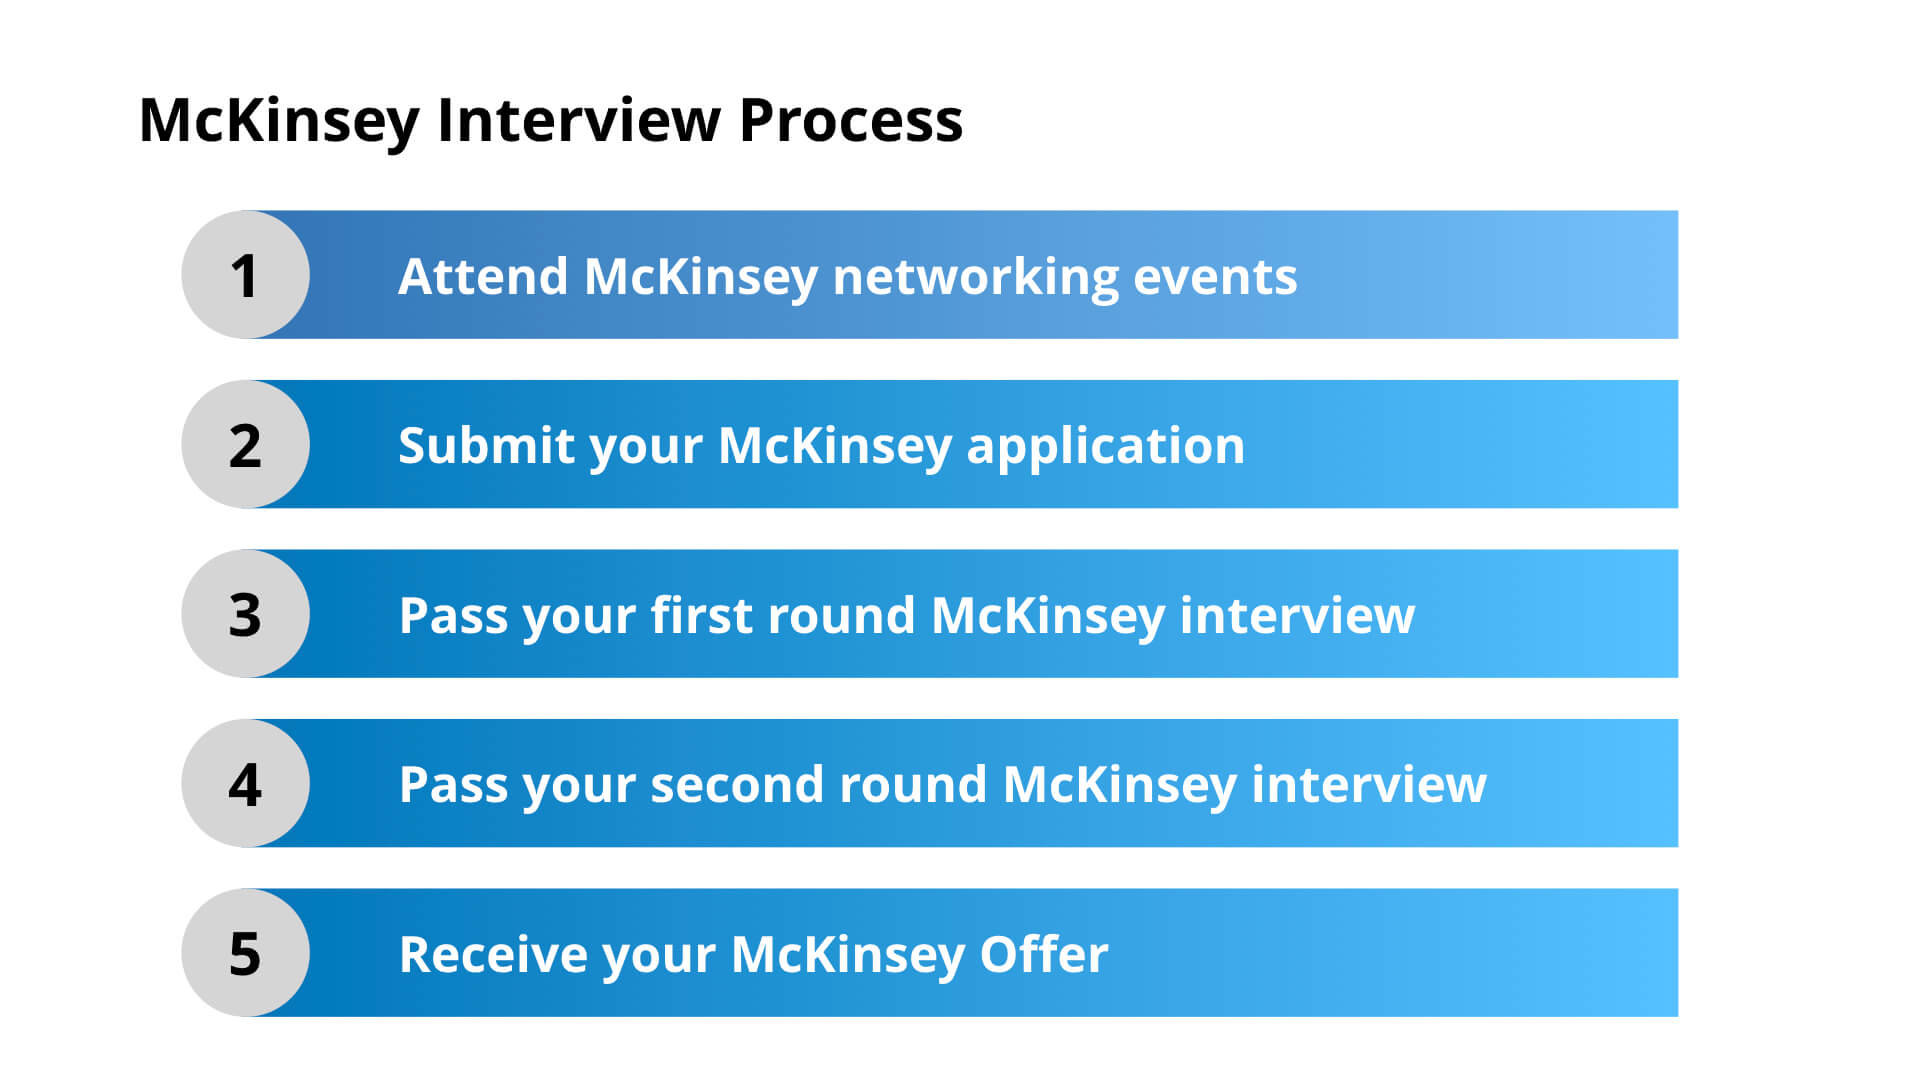 McKinsey Interview Process